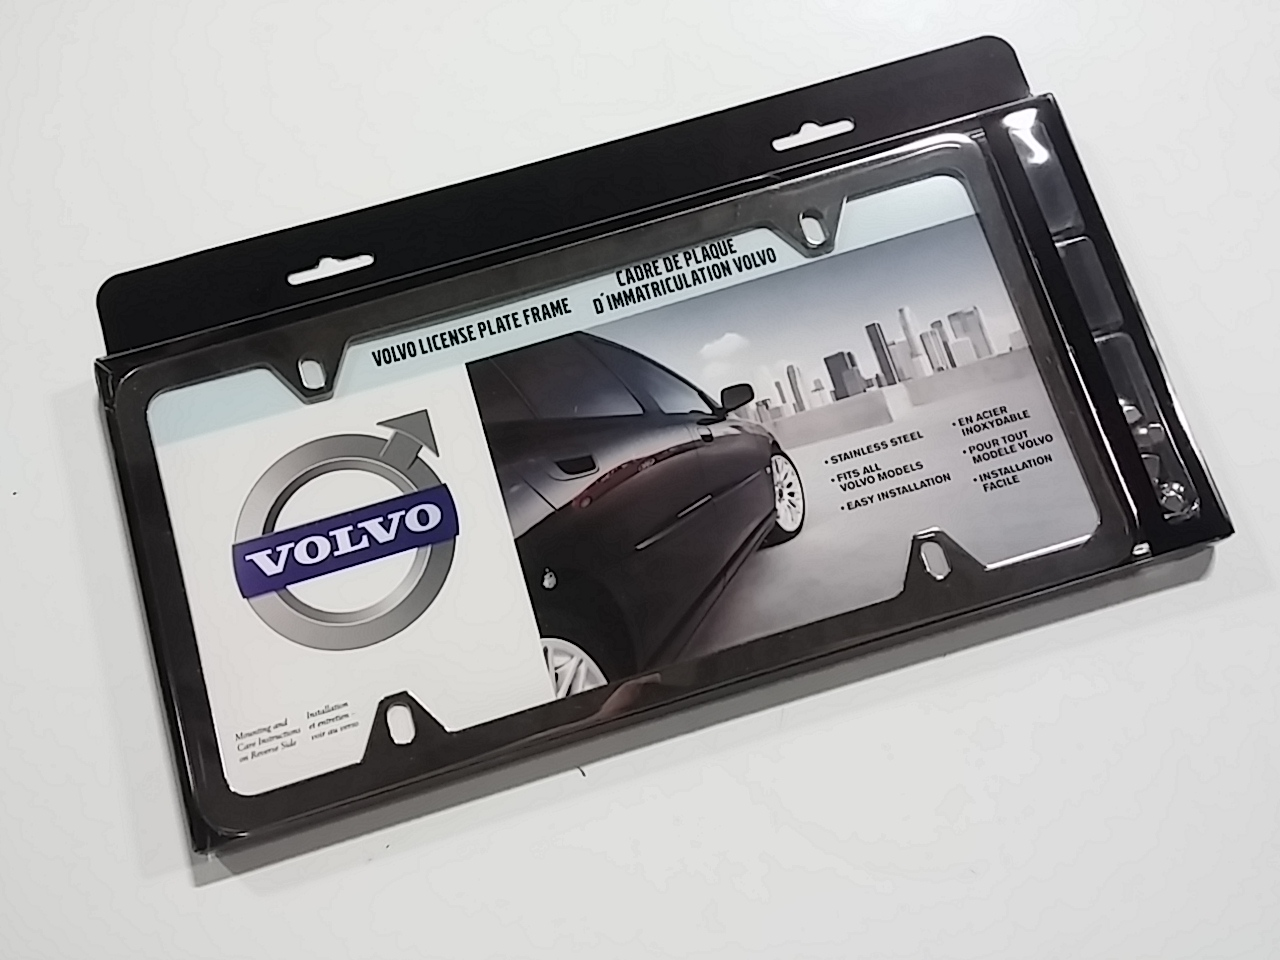 trunk volvo htm boot of wallpaper accessories picture